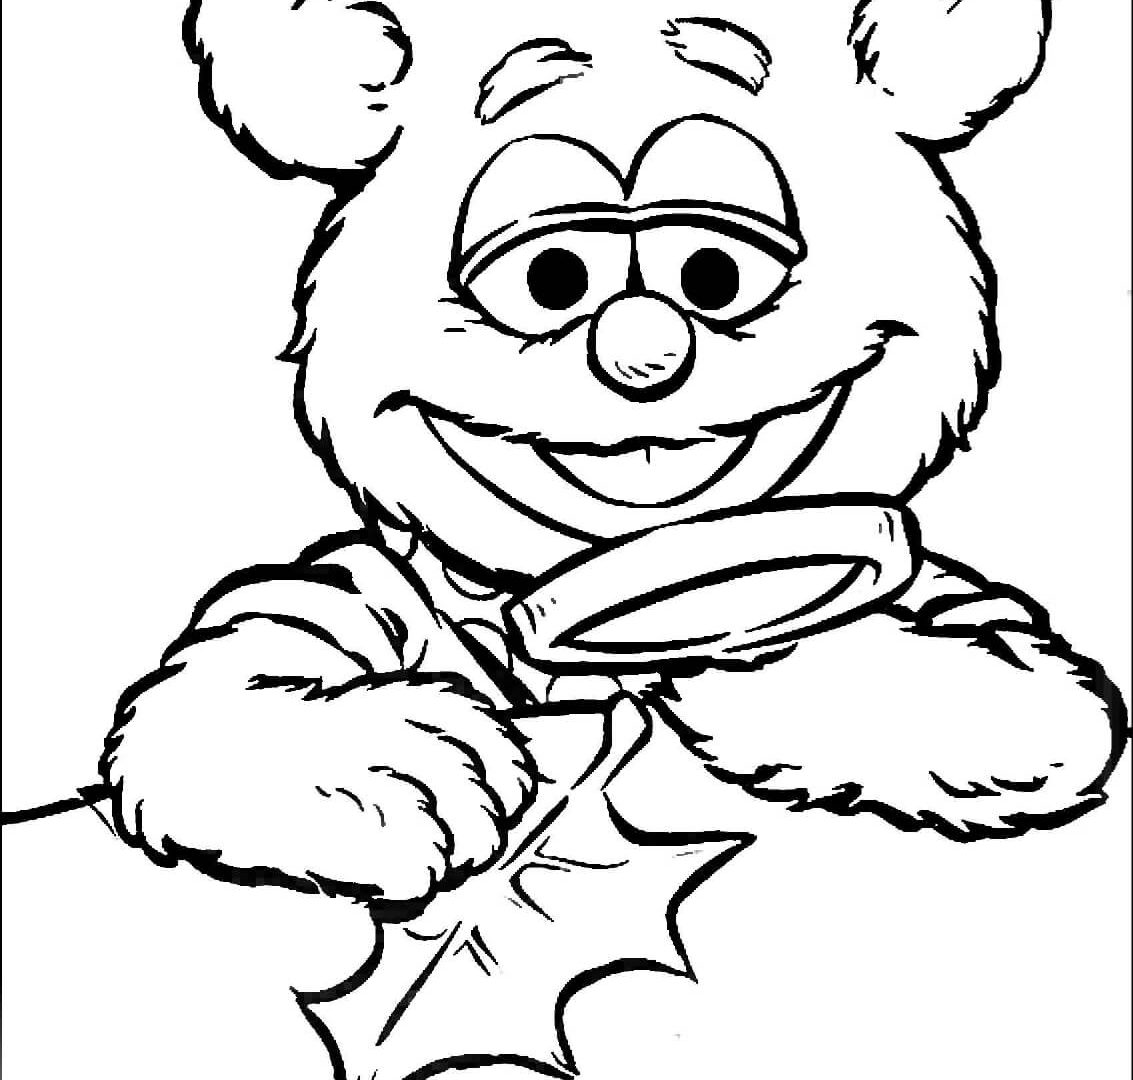 1133x1080 The Muppet Show Cartoons Fozzie Bear With Banana Coloring